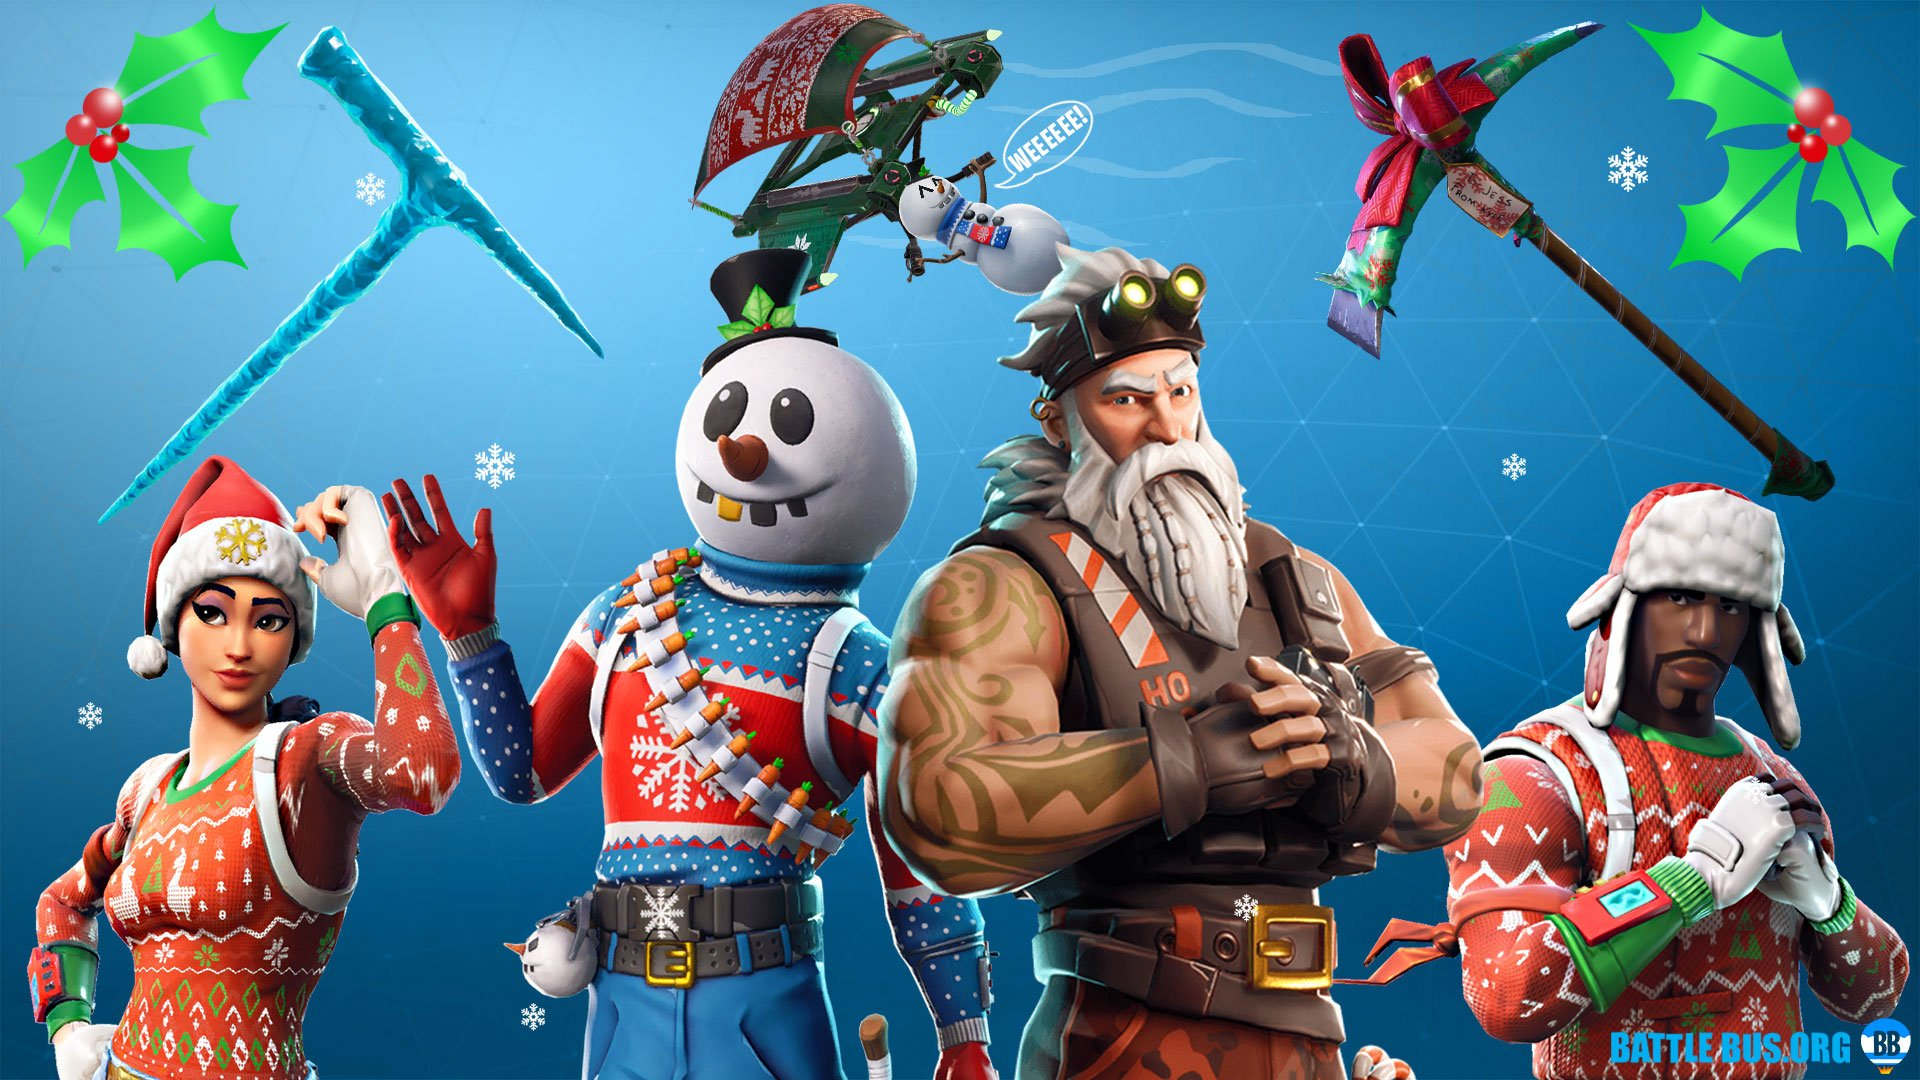 Every Fortnite Christmas skin so far 16th Dec   Fortnite Season 7 1920x1080